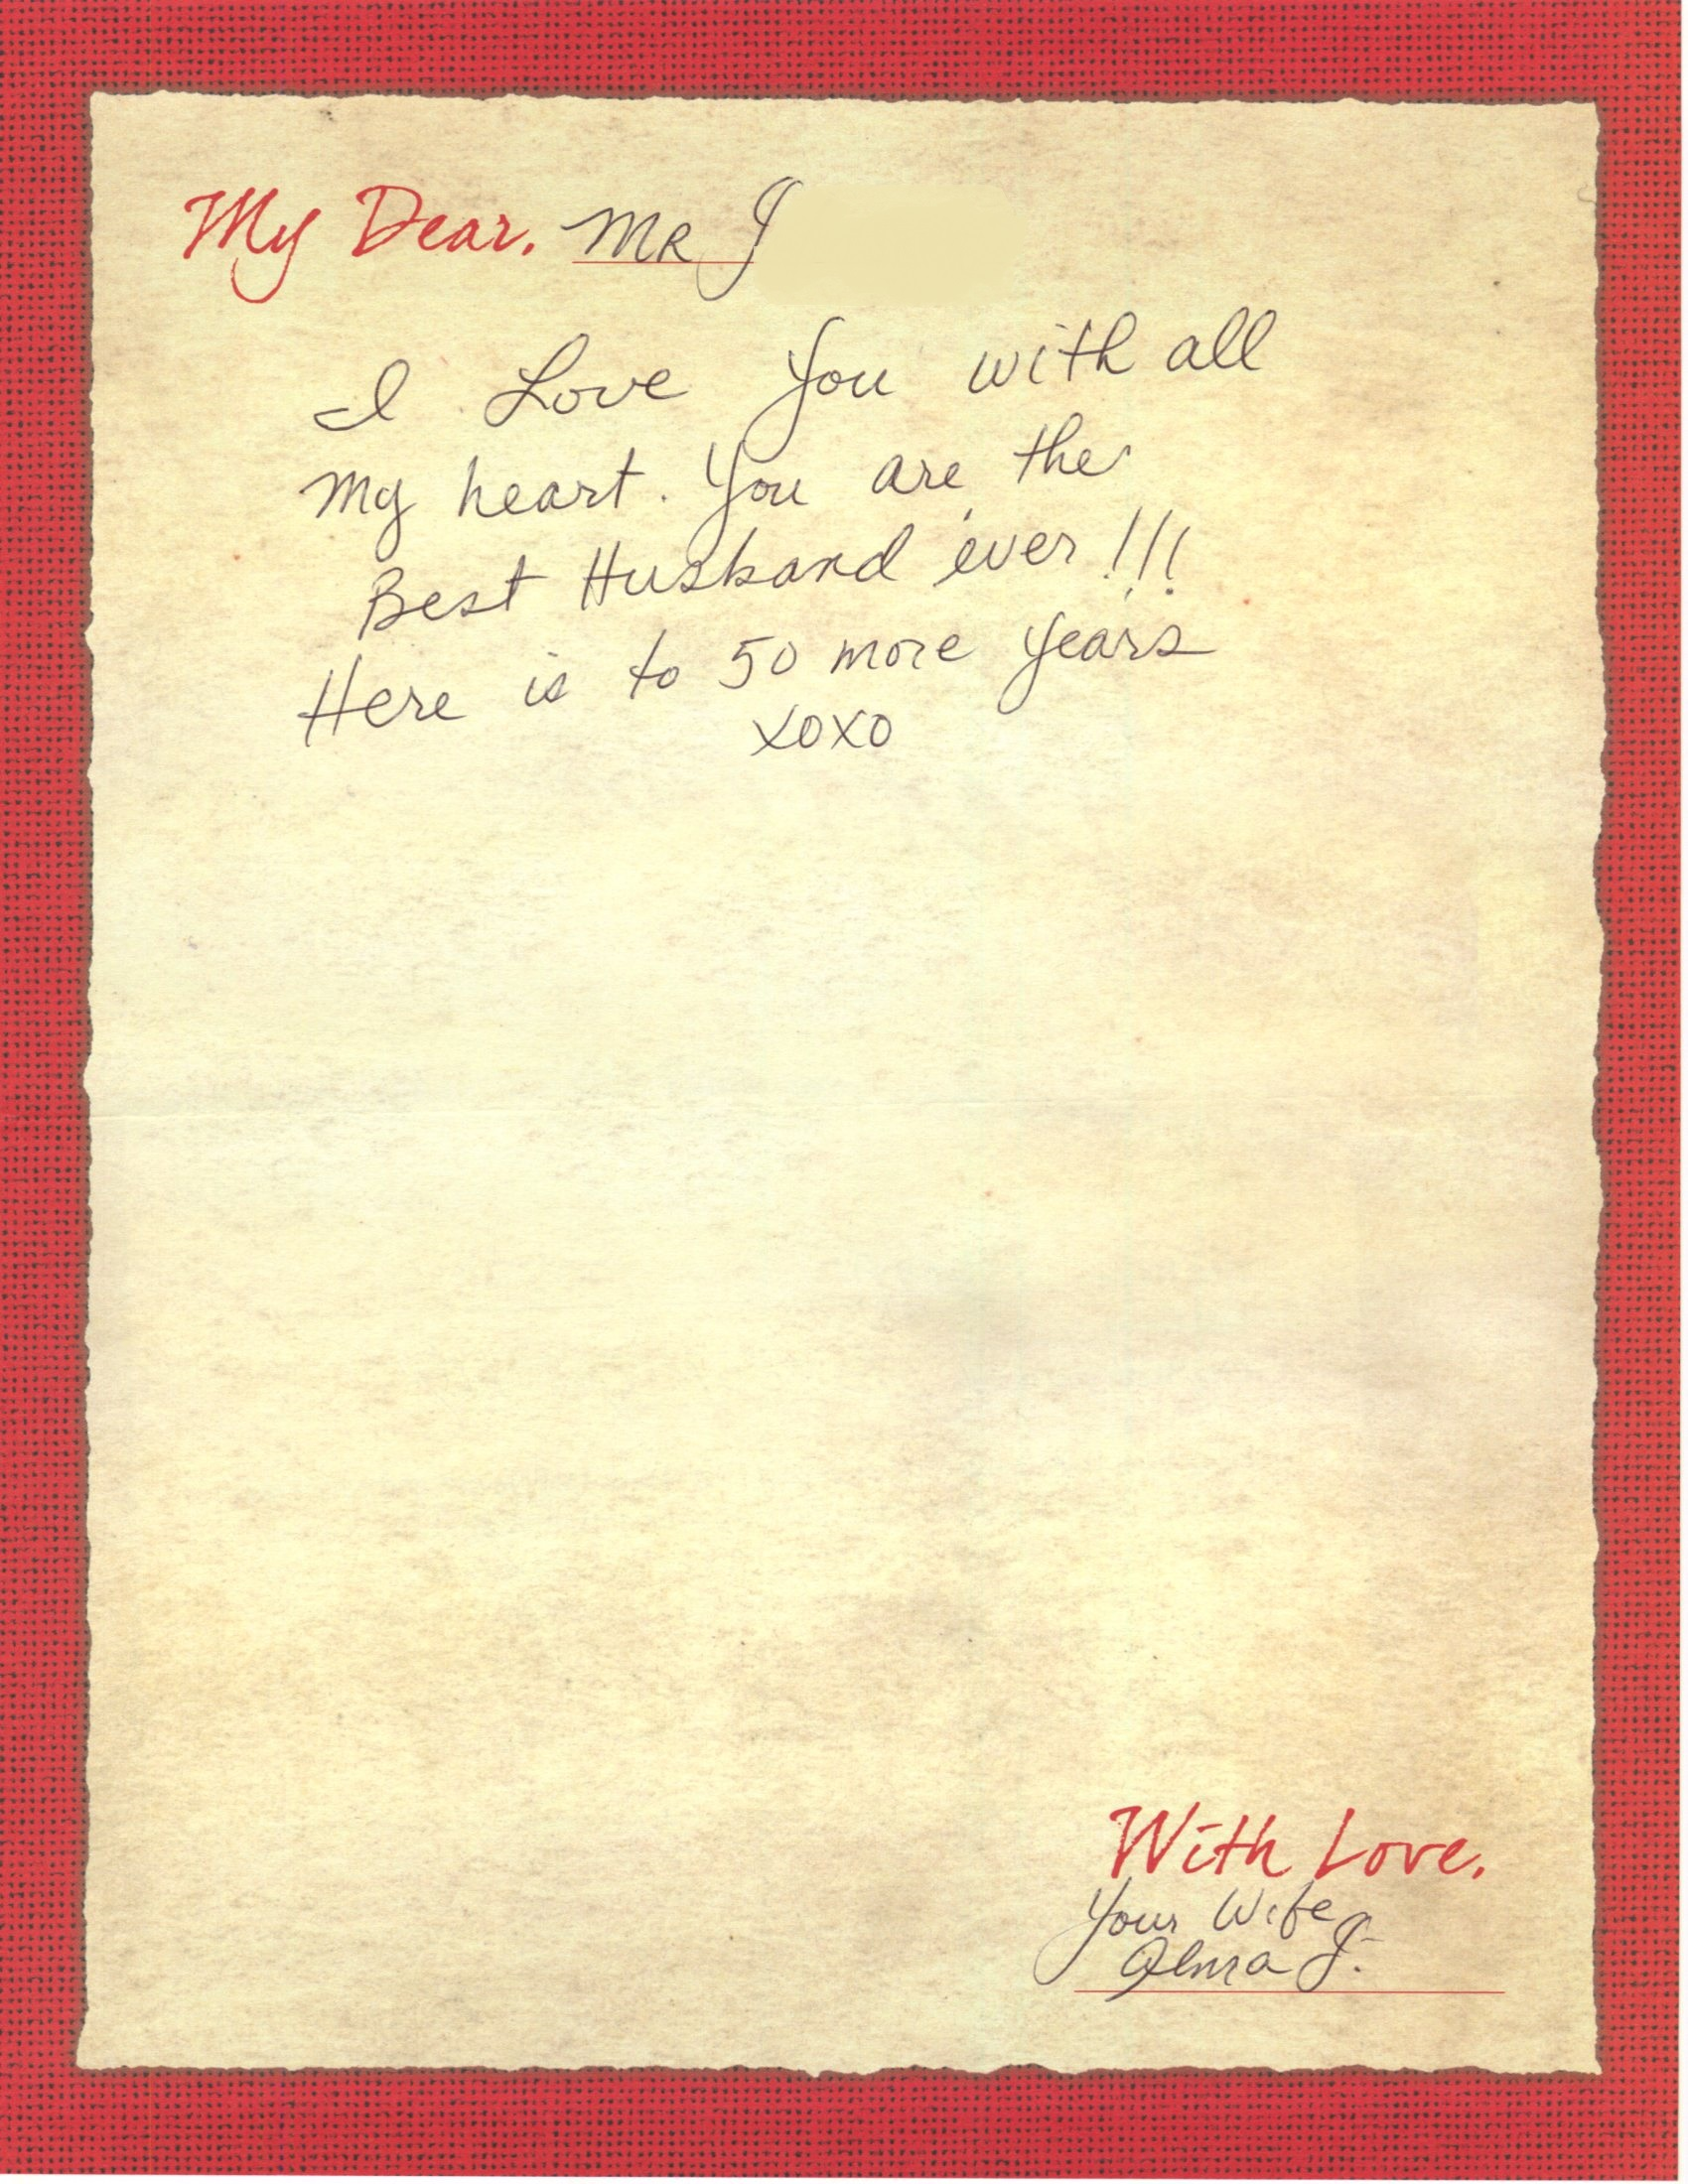 Love letters cove haven resorts to stacey from with love to my dear from emmett to gina from luis to cenia from juanita to tarvarse from lisa to chris from mrsw thecheapjerseys Image collections